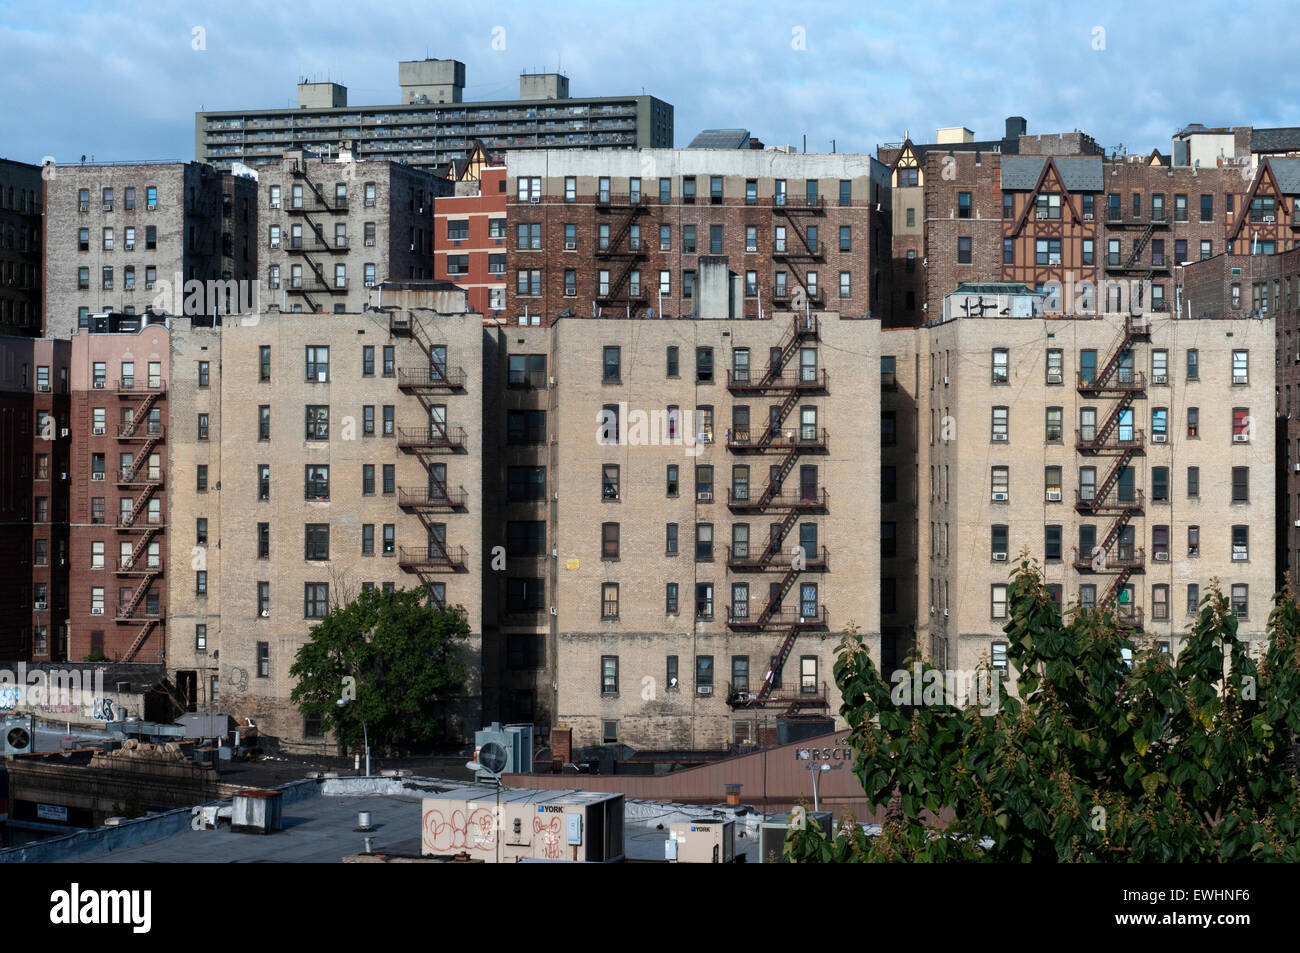 Typical landscape and buildings in the Bronx. Bronx Thinking nothing can make us imagine some friendly faces and - Stock Image